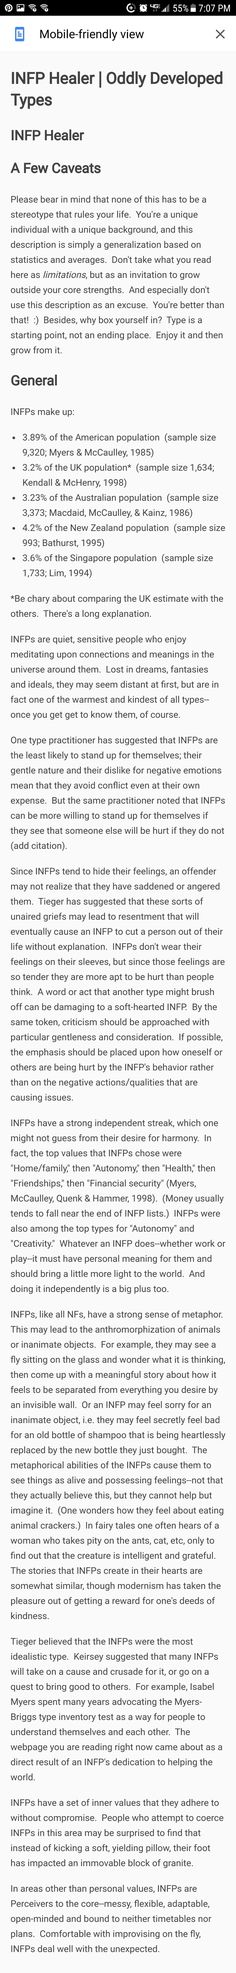 More INFP facts...